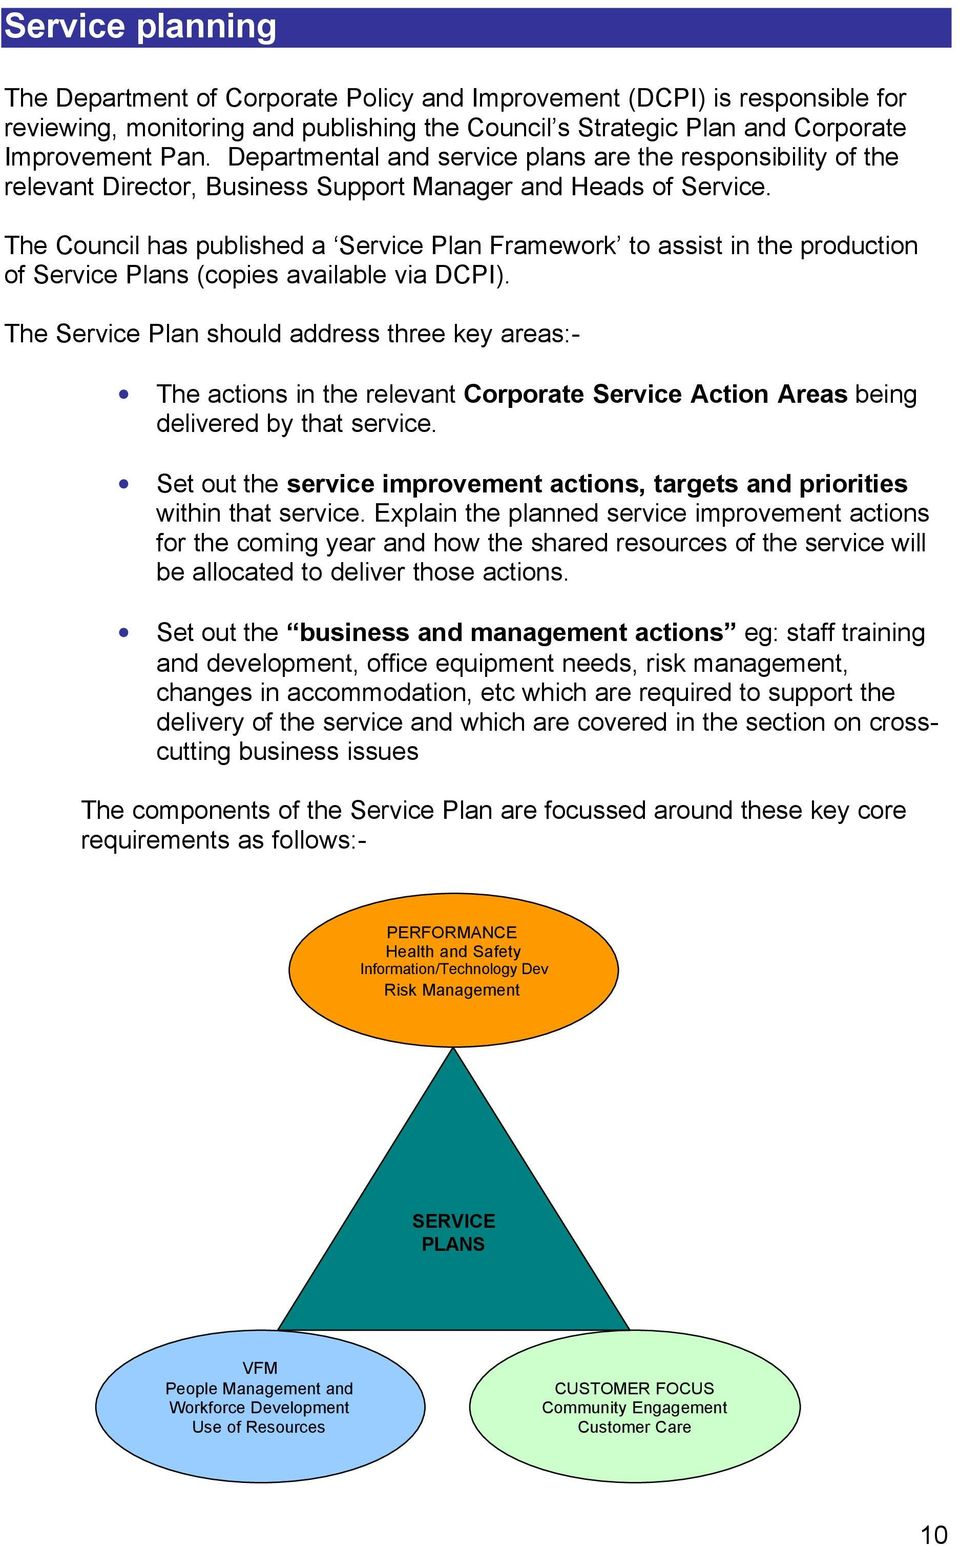 The Council has published a Service Plan Framework to assist in the production of Service Plans (copies available via DCPI).